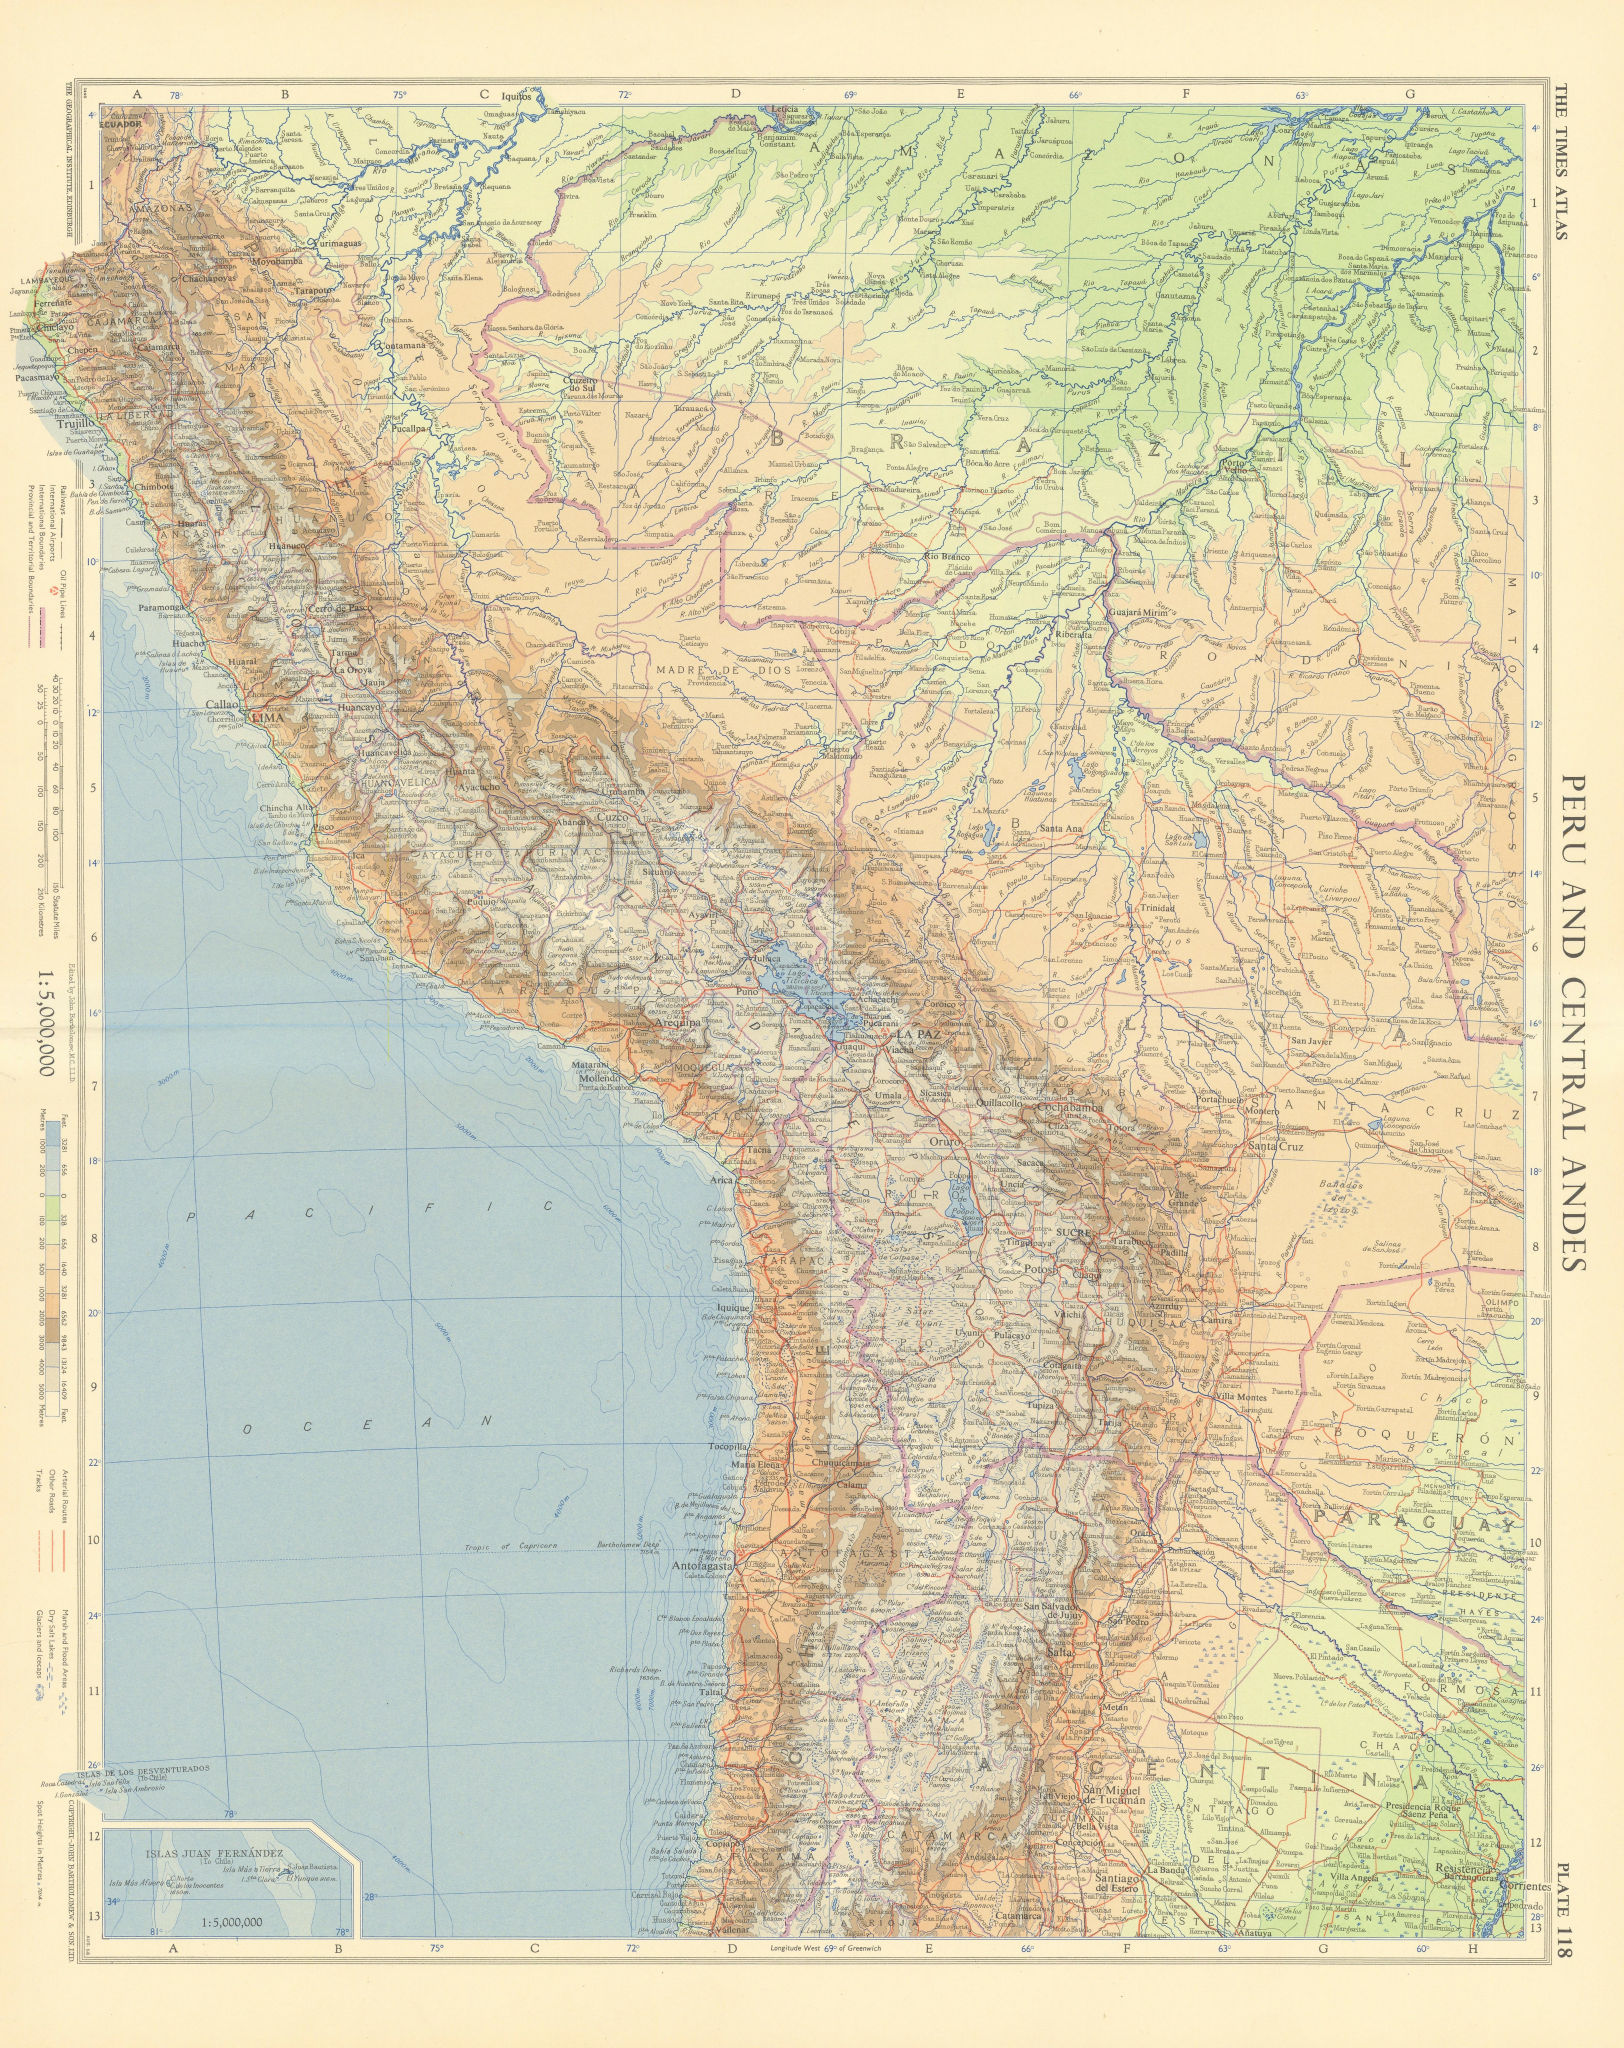 Peru & central Andes. Bolivia Chile Amazonai. Andean States. TIMES 1957 map